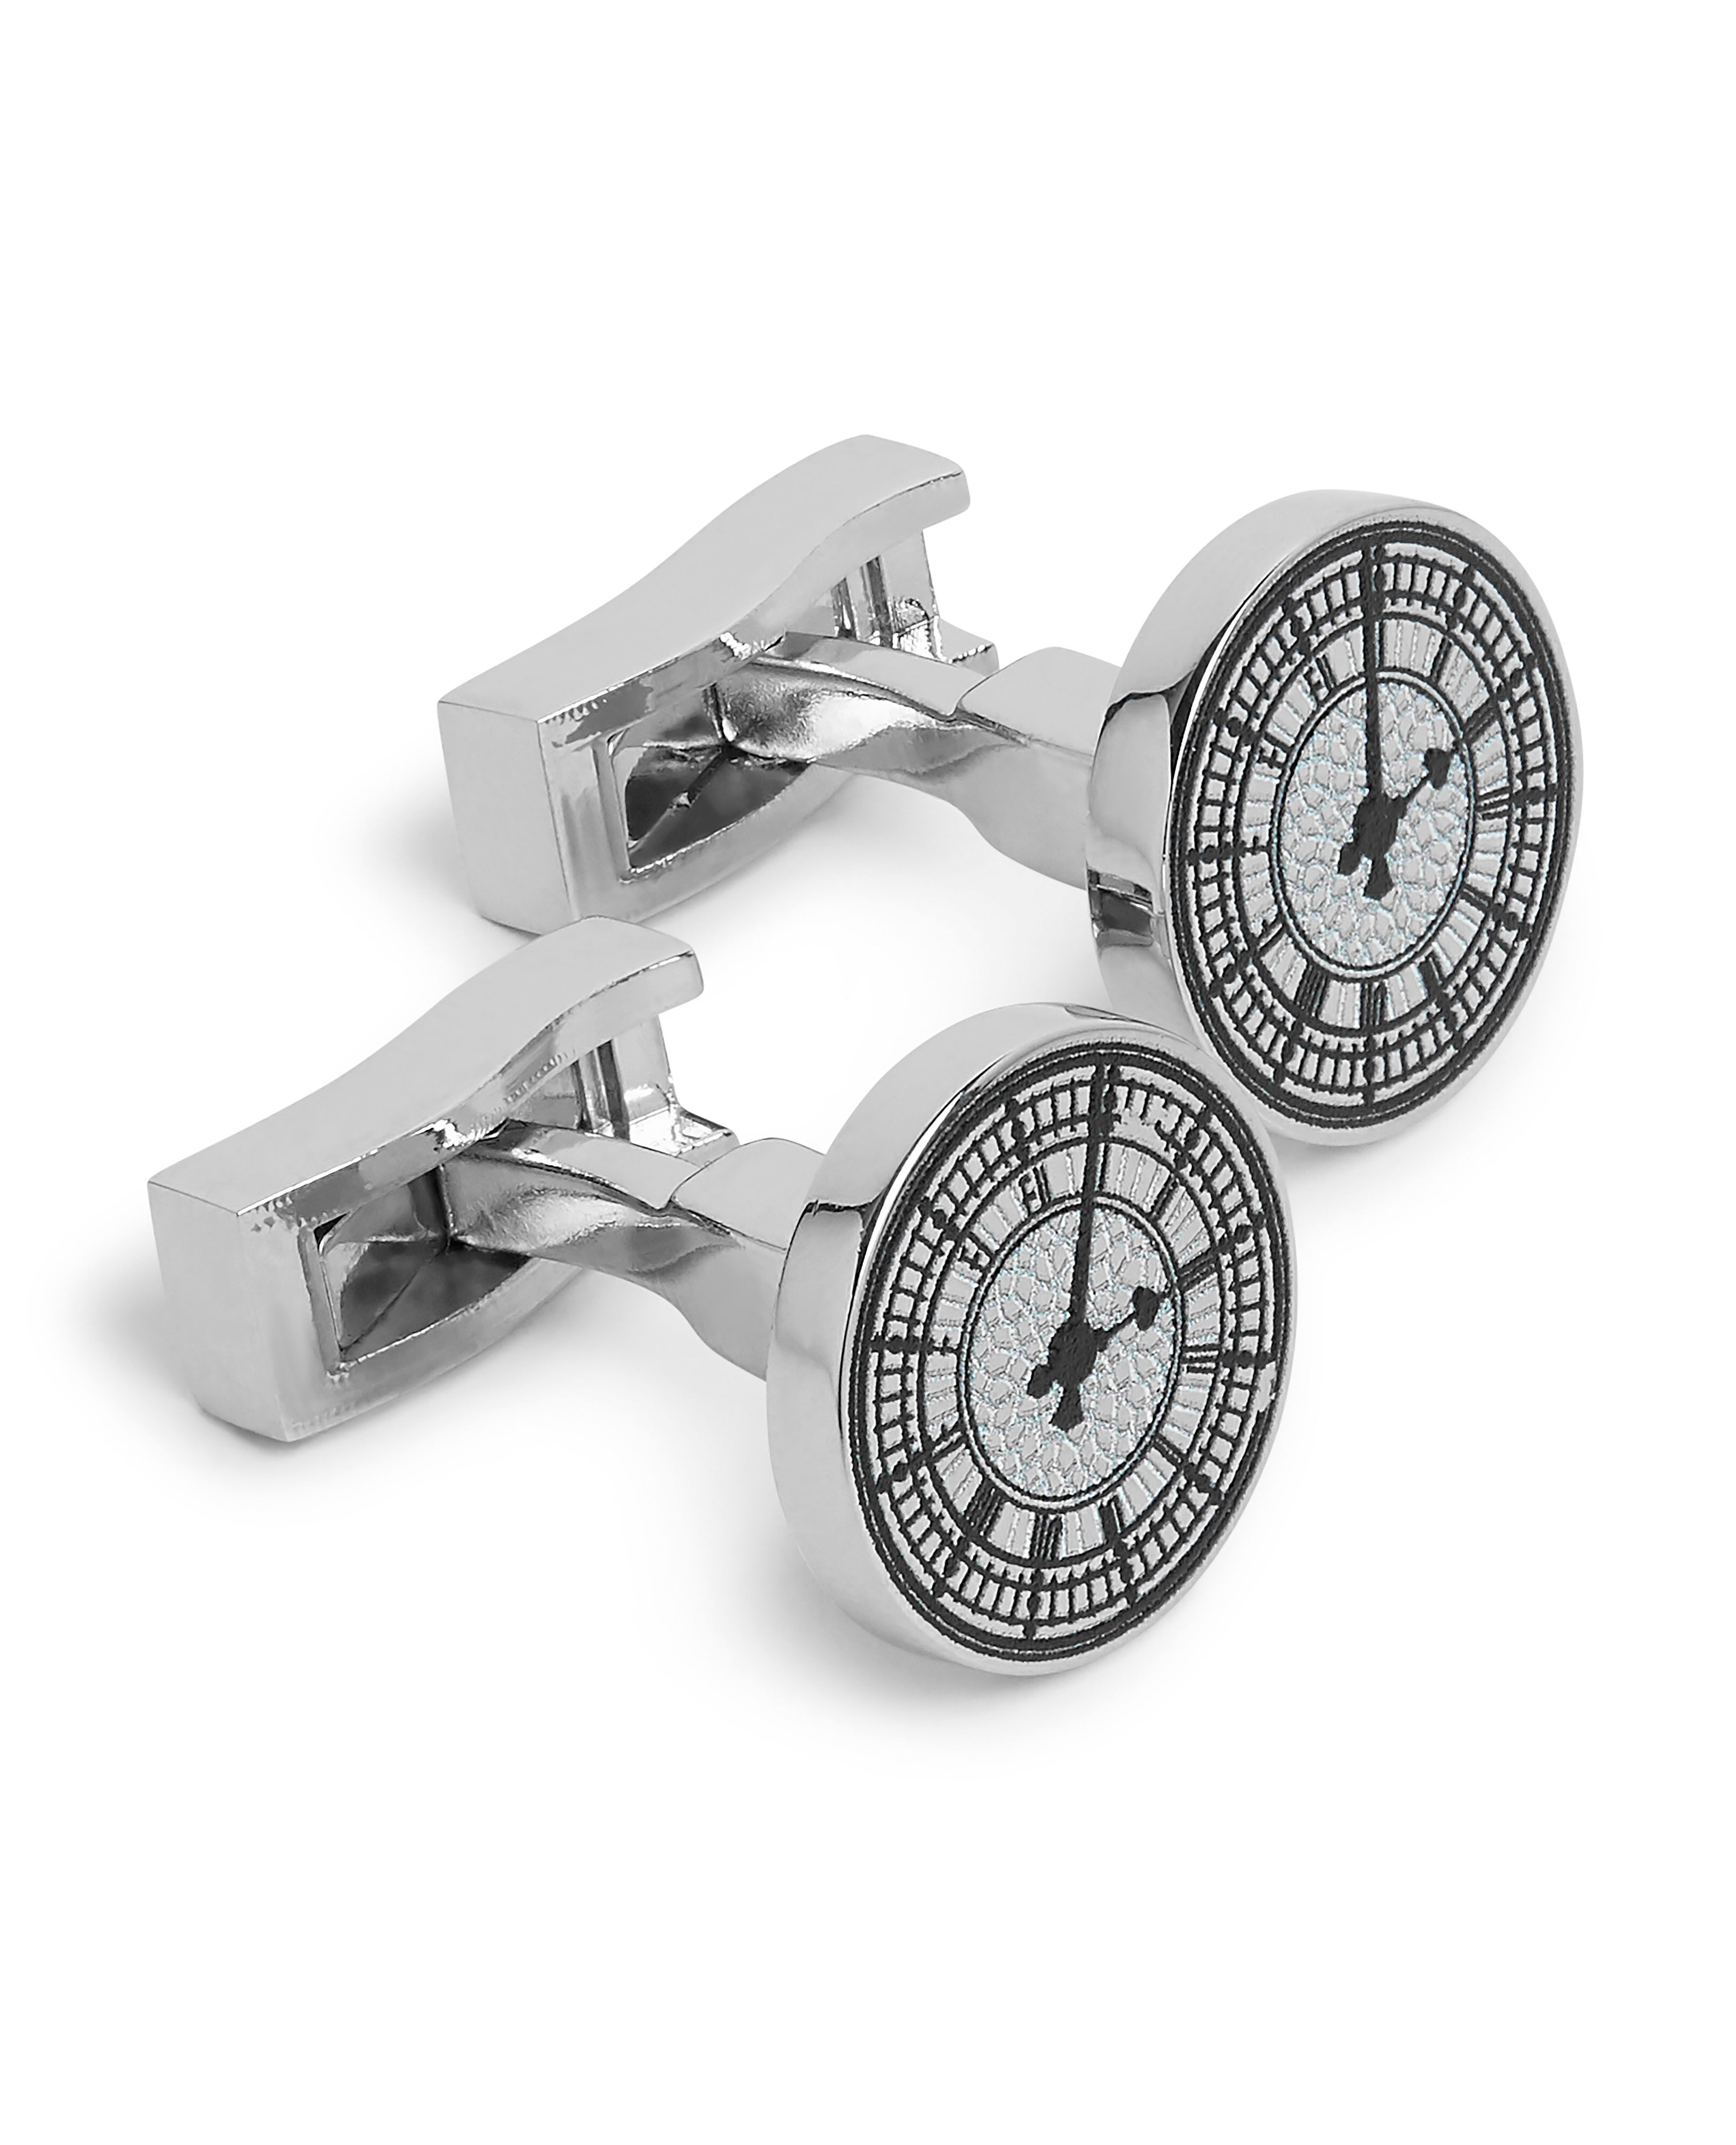 London Landmark Inspired Clock Face Cufflinks By T M Lewin Thread Com